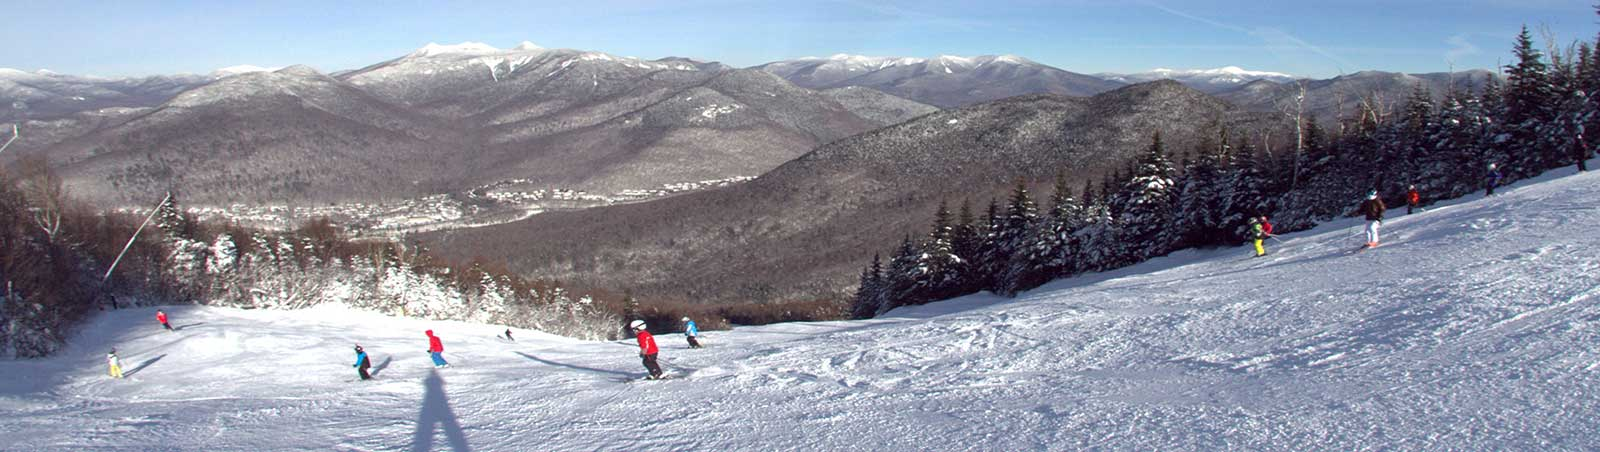 Loon Valley Skiing, New Hampshire, inspireski